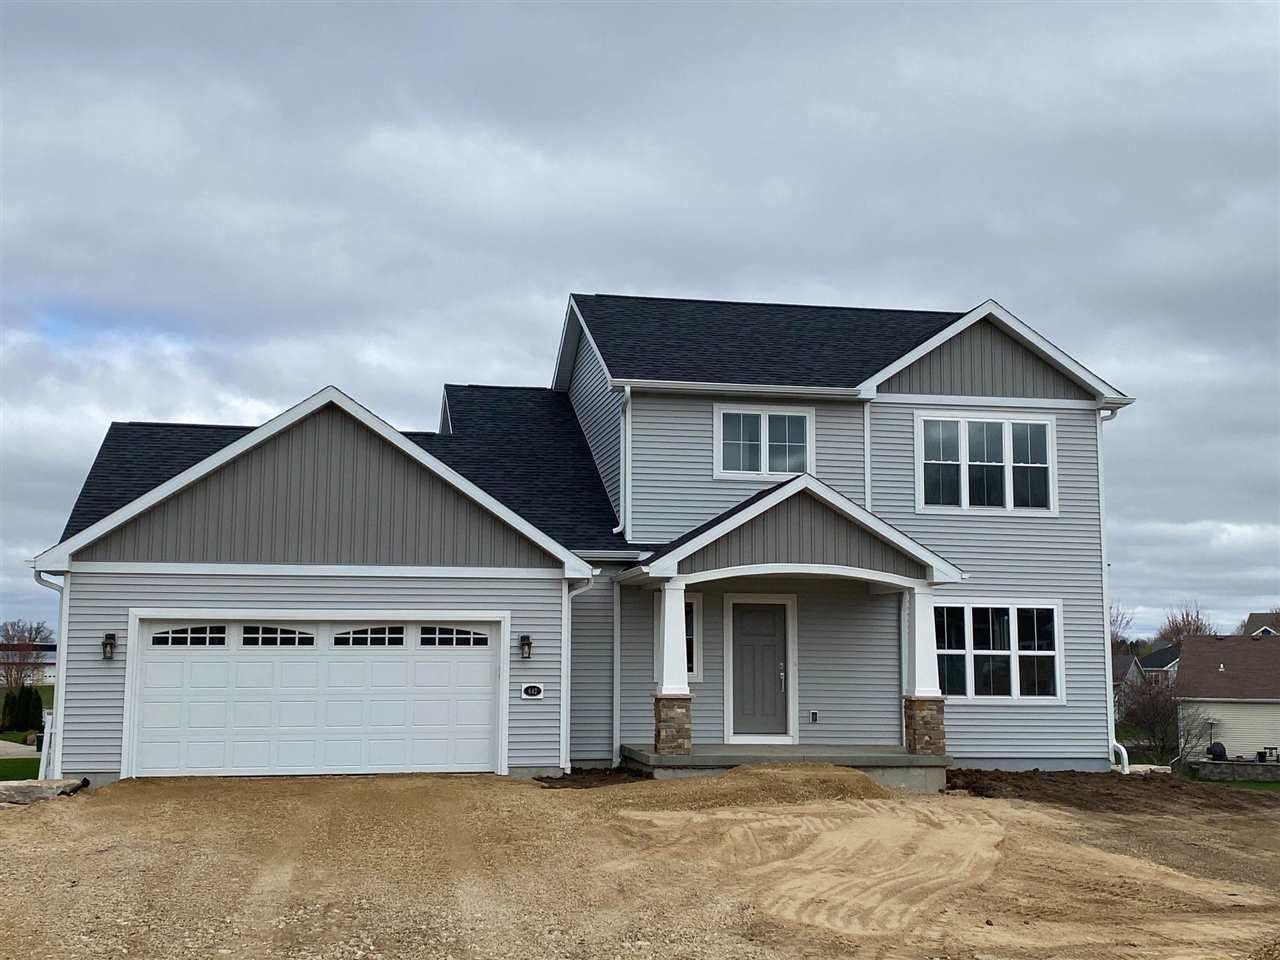 Photo for 1904 Three Wood Dr, Mount Horeb, WI 53572 (MLS # 1909335)